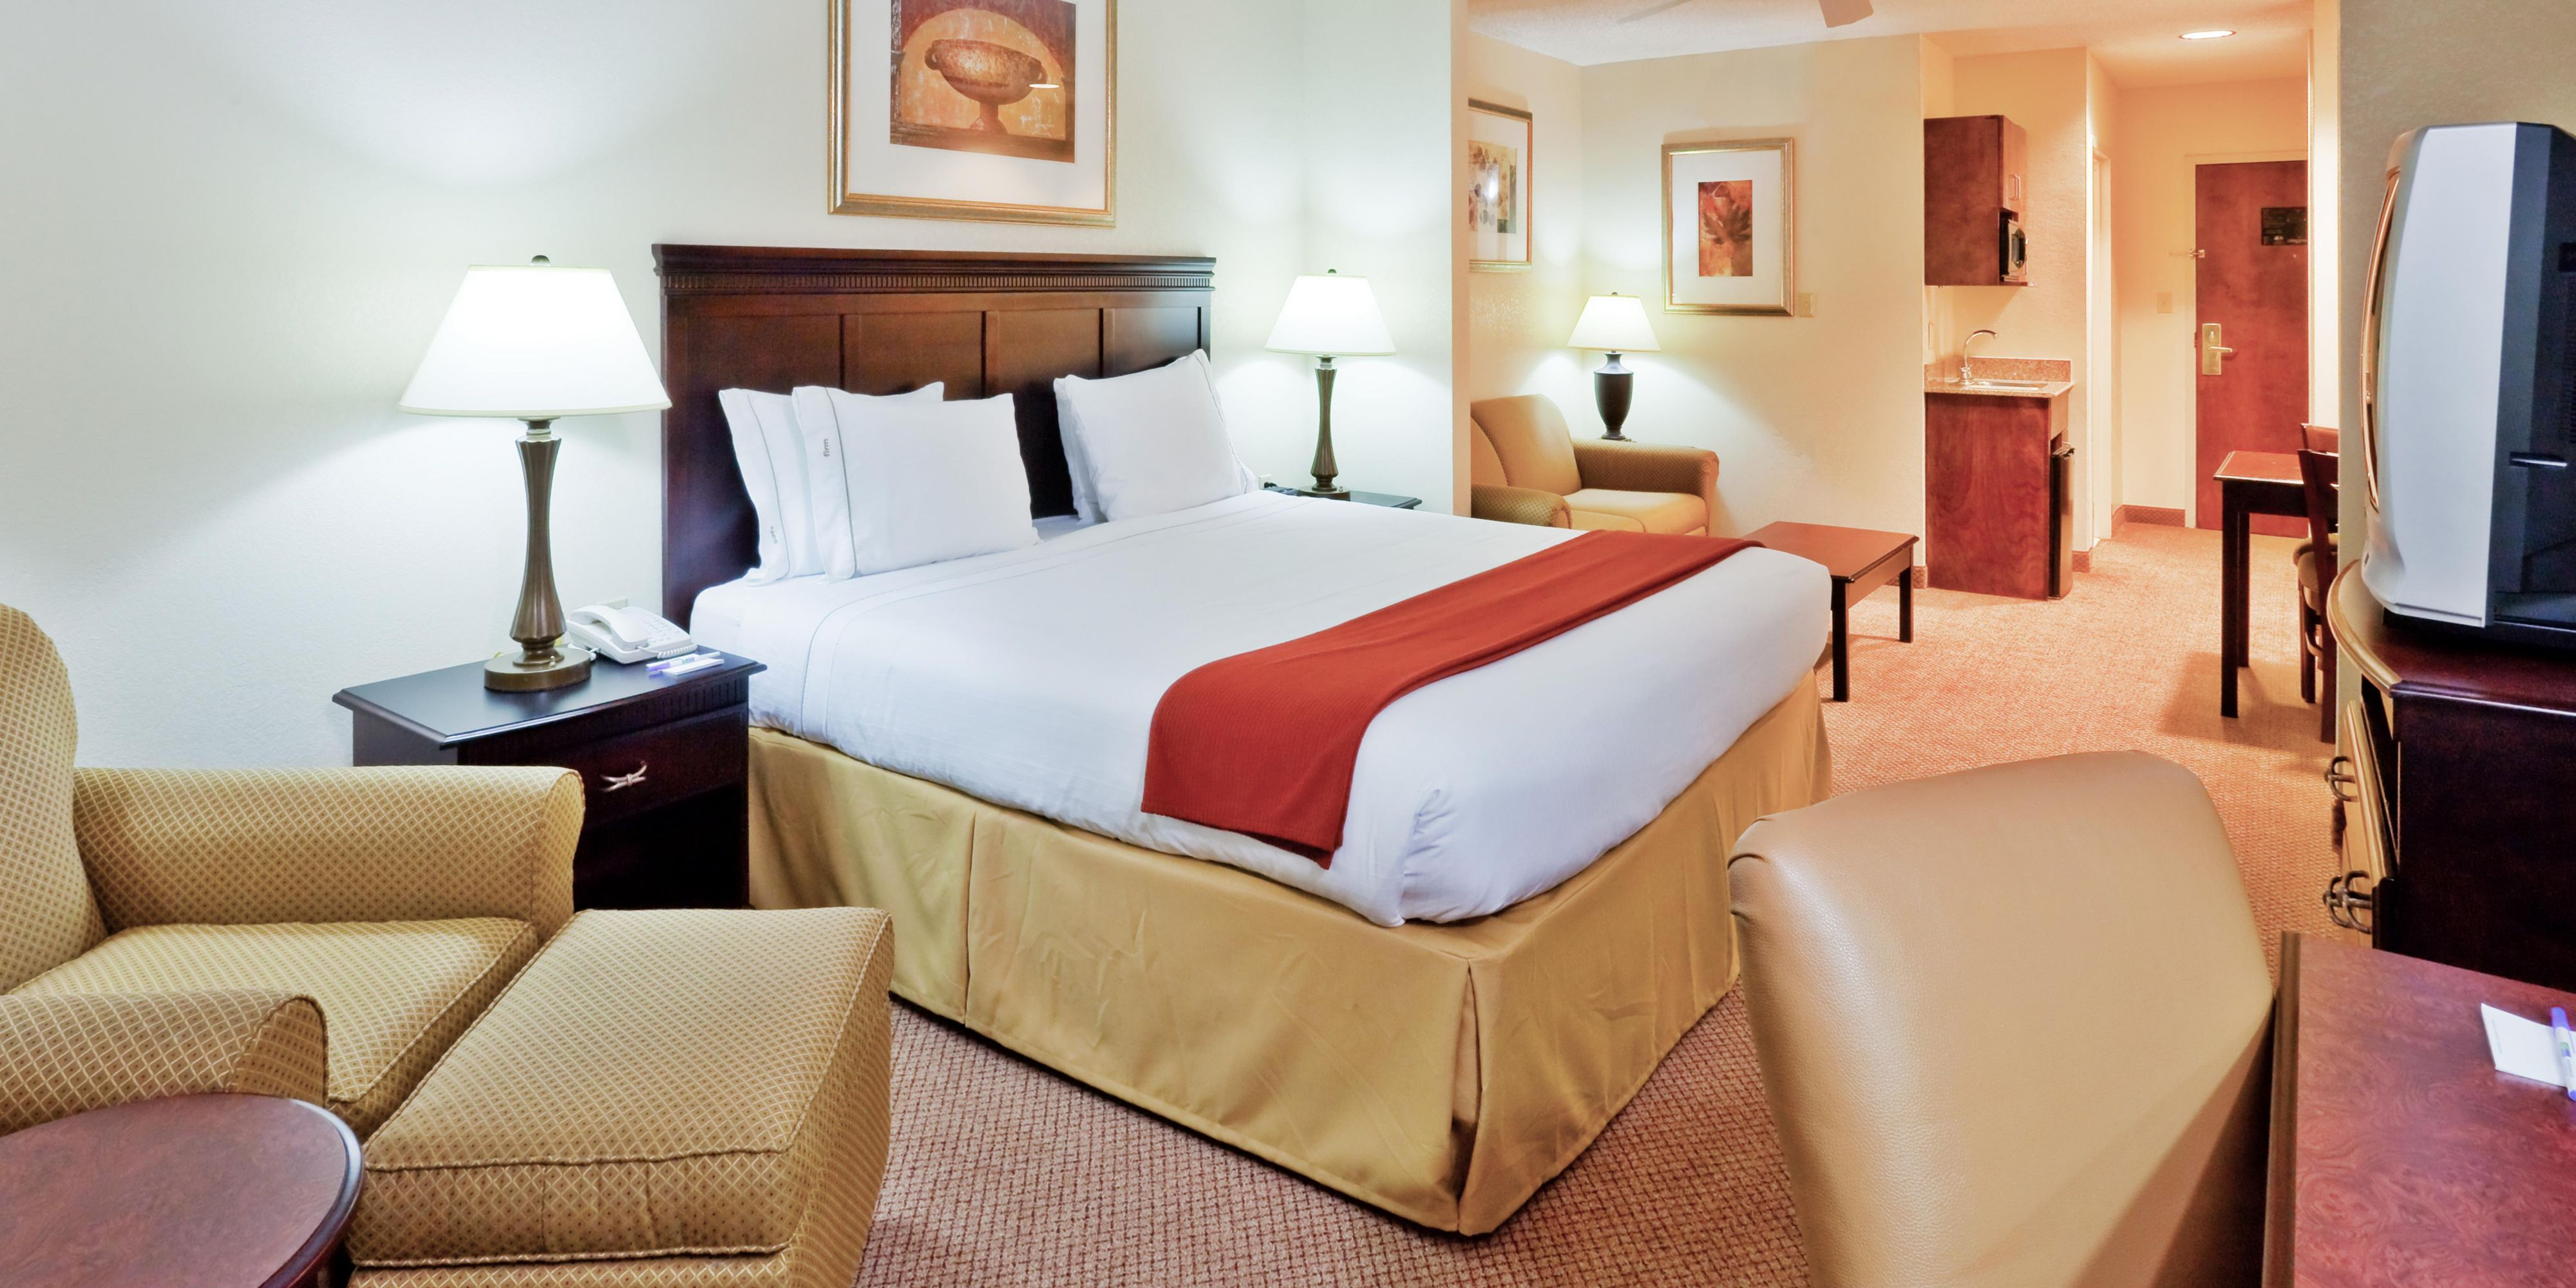 Holiday Inn Express And Suites Philadelphia 2533192203 2x1